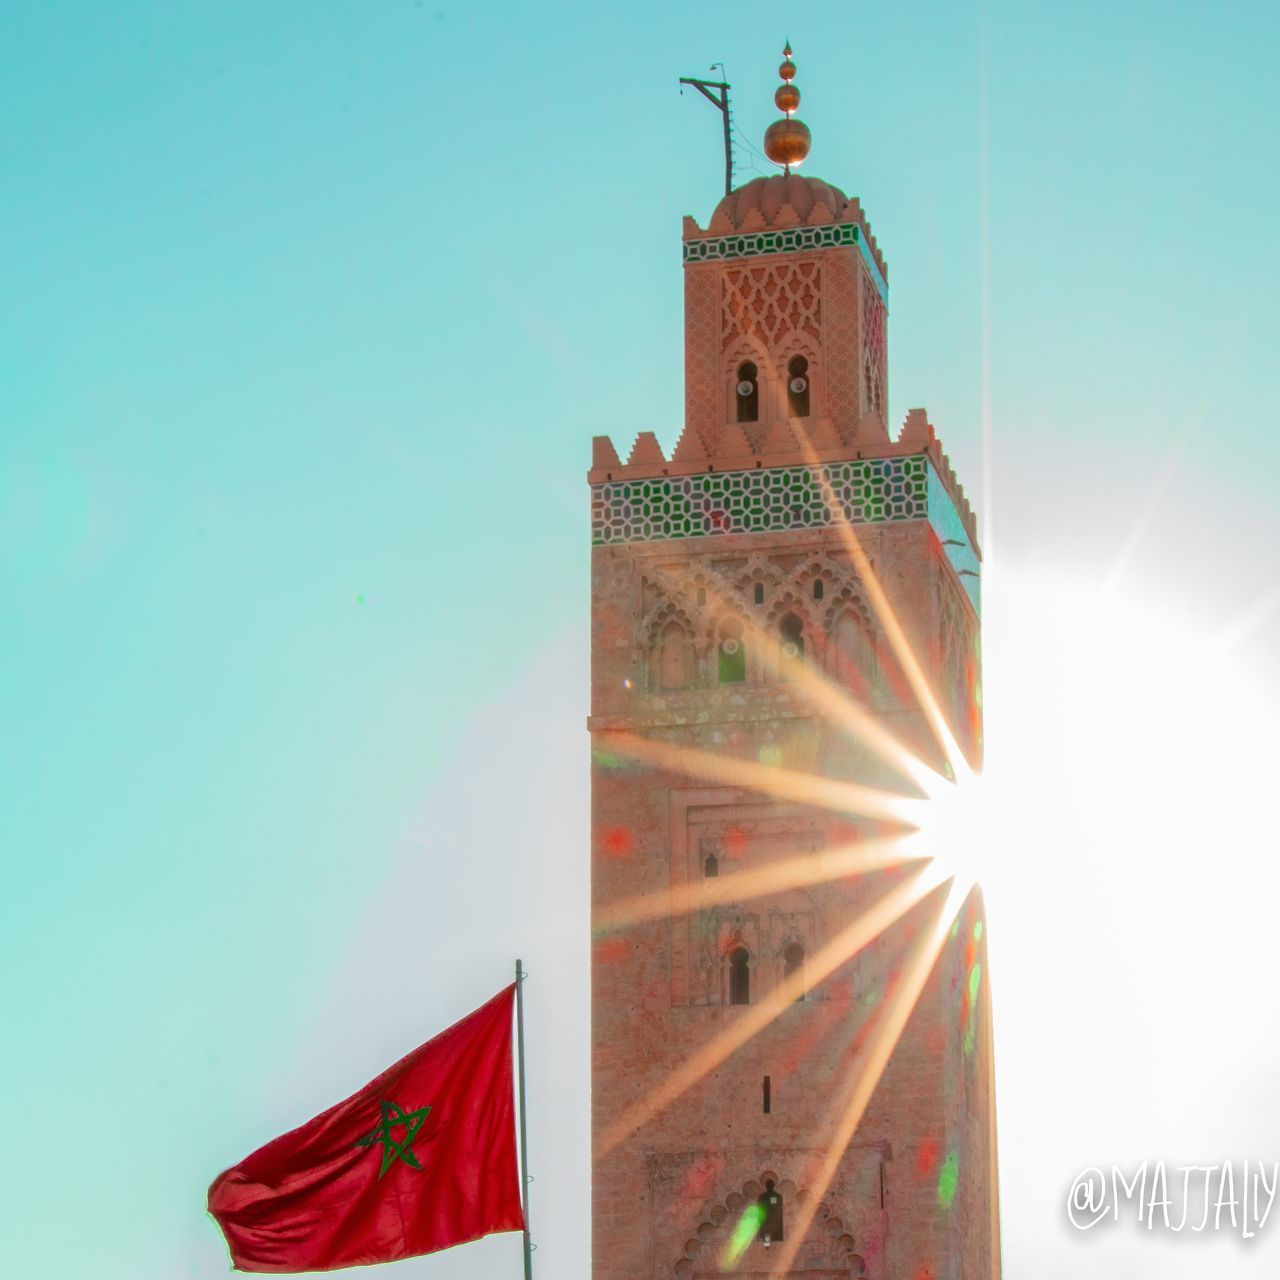 built structure, sky, architecture, building exterior, building, nature, no people, tower, low angle view, clear sky, sunlight, lens flare, flag, sun, day, religion, travel destinations, city, tourism, outdoors